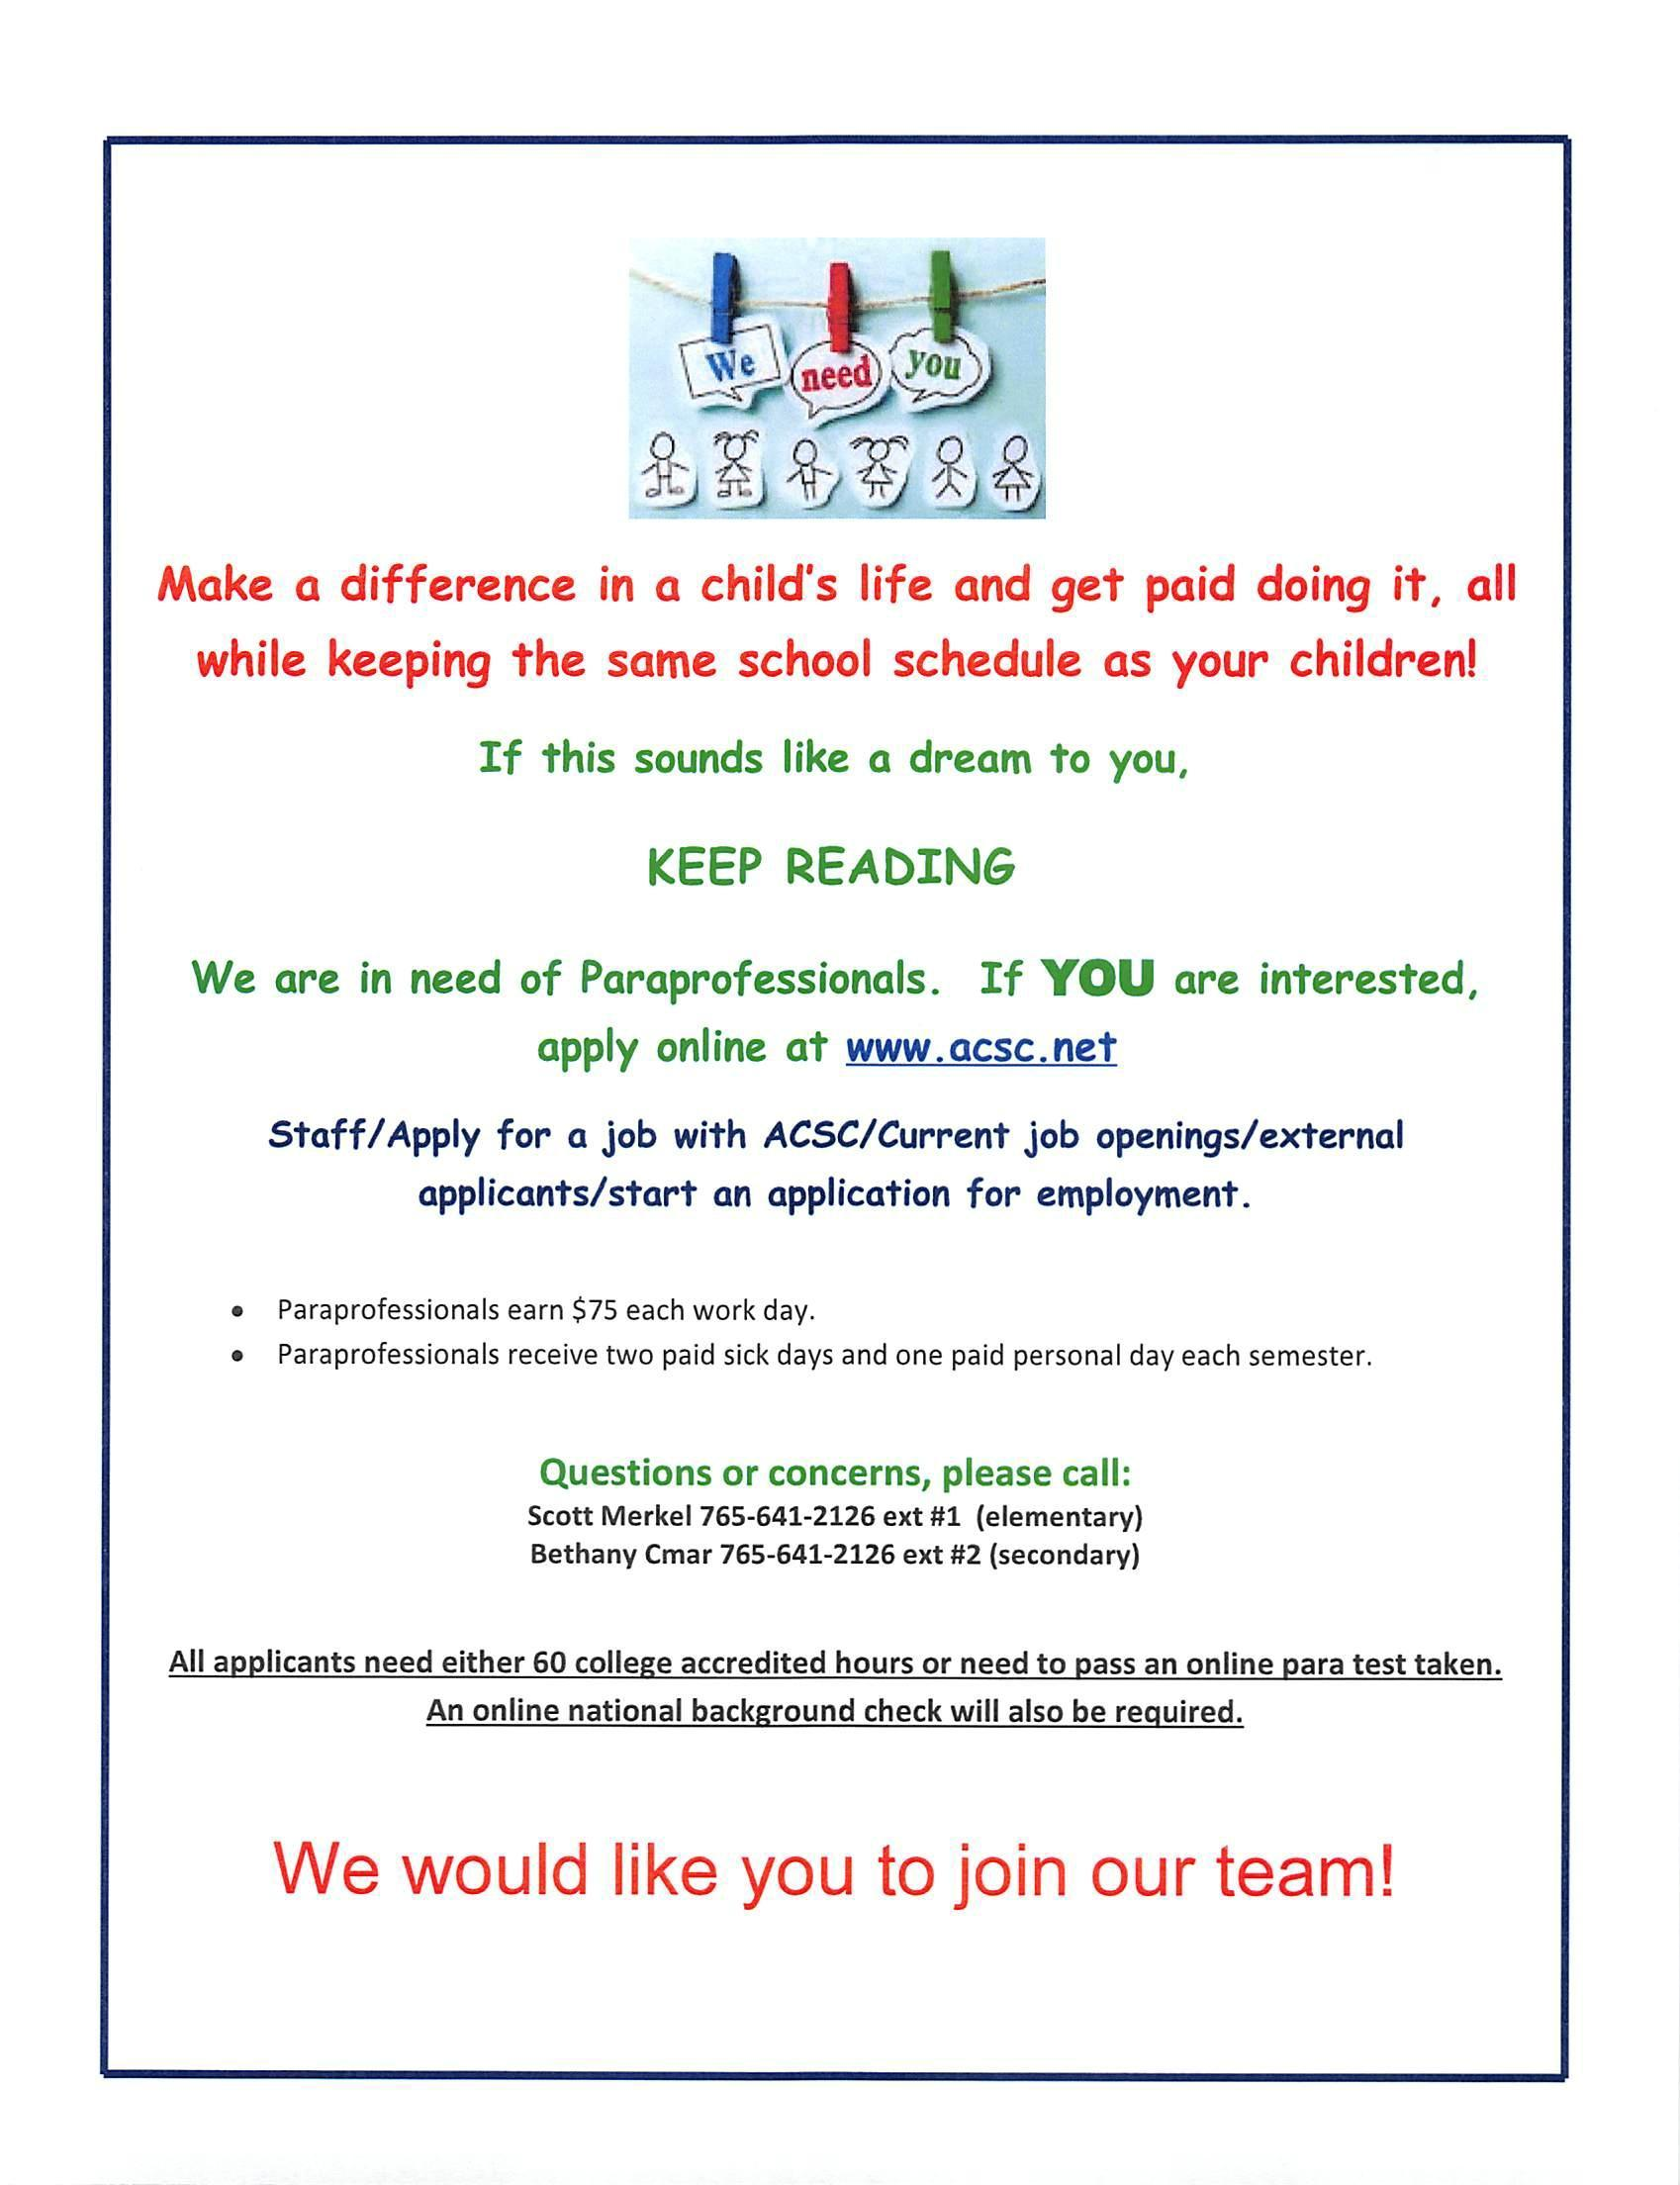 Poster advertising to hire paraeducators